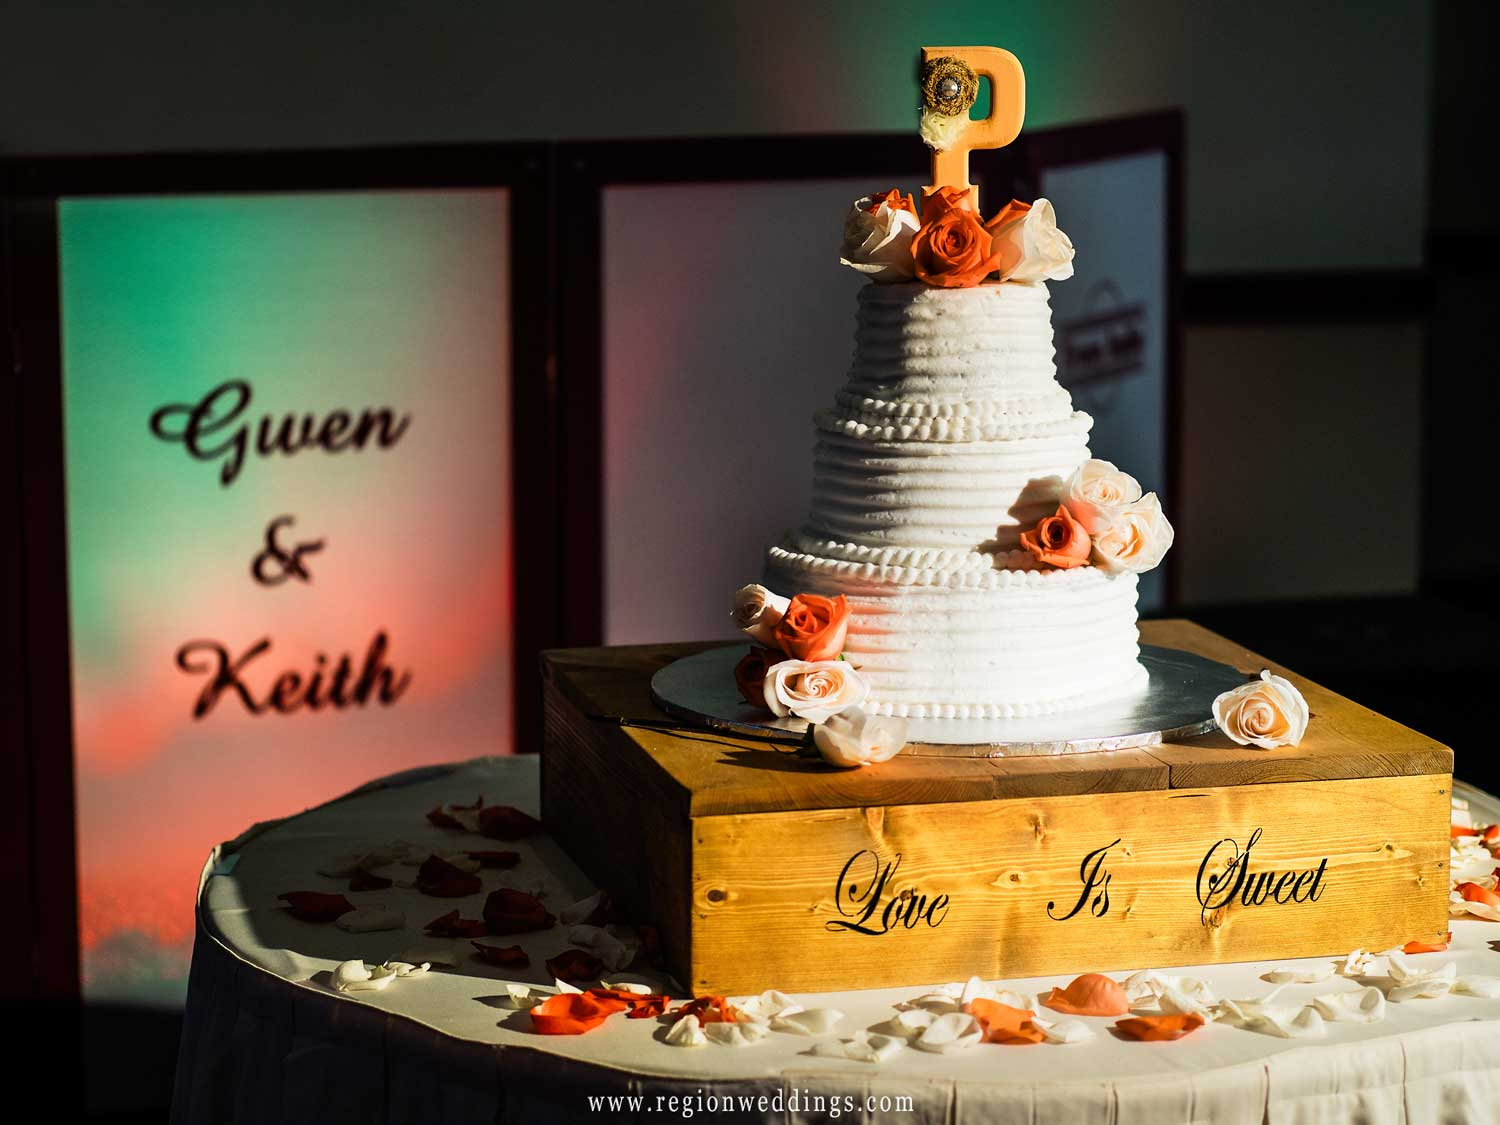 Wedding cake at Signature Banquets in Lowell, Indiana.